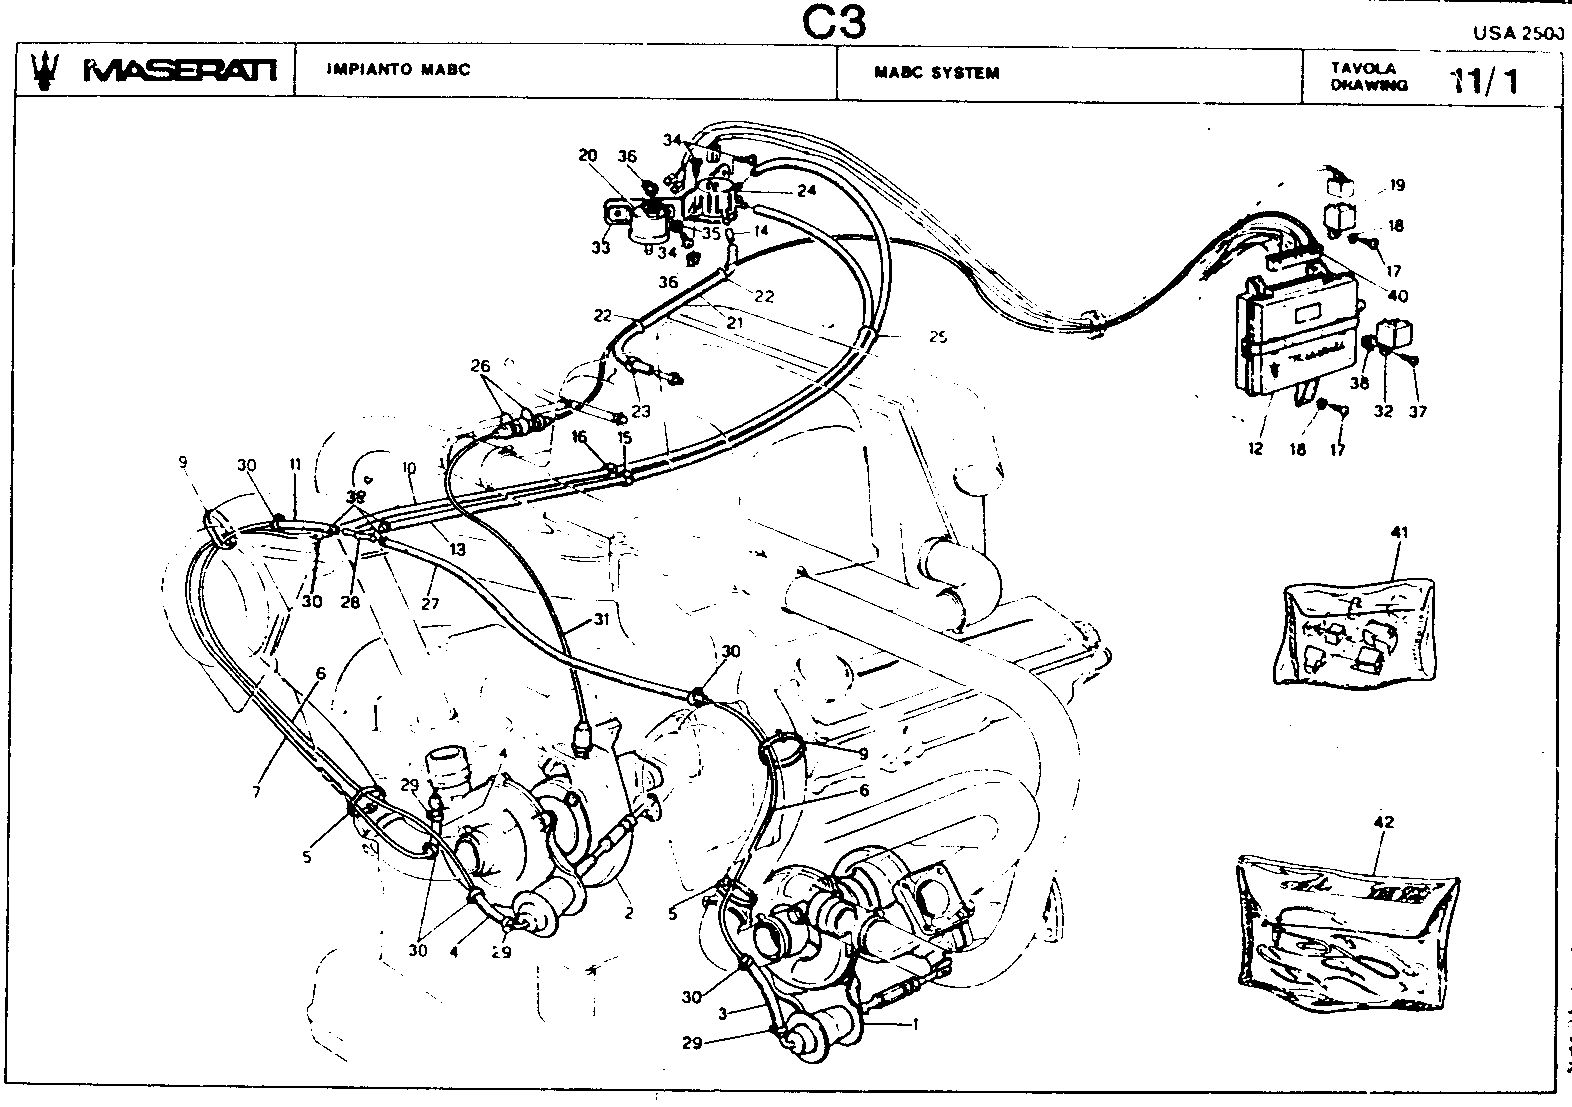 [DIAGRAM] Maserati Biturbo Wiring Diagram FULL Version HD